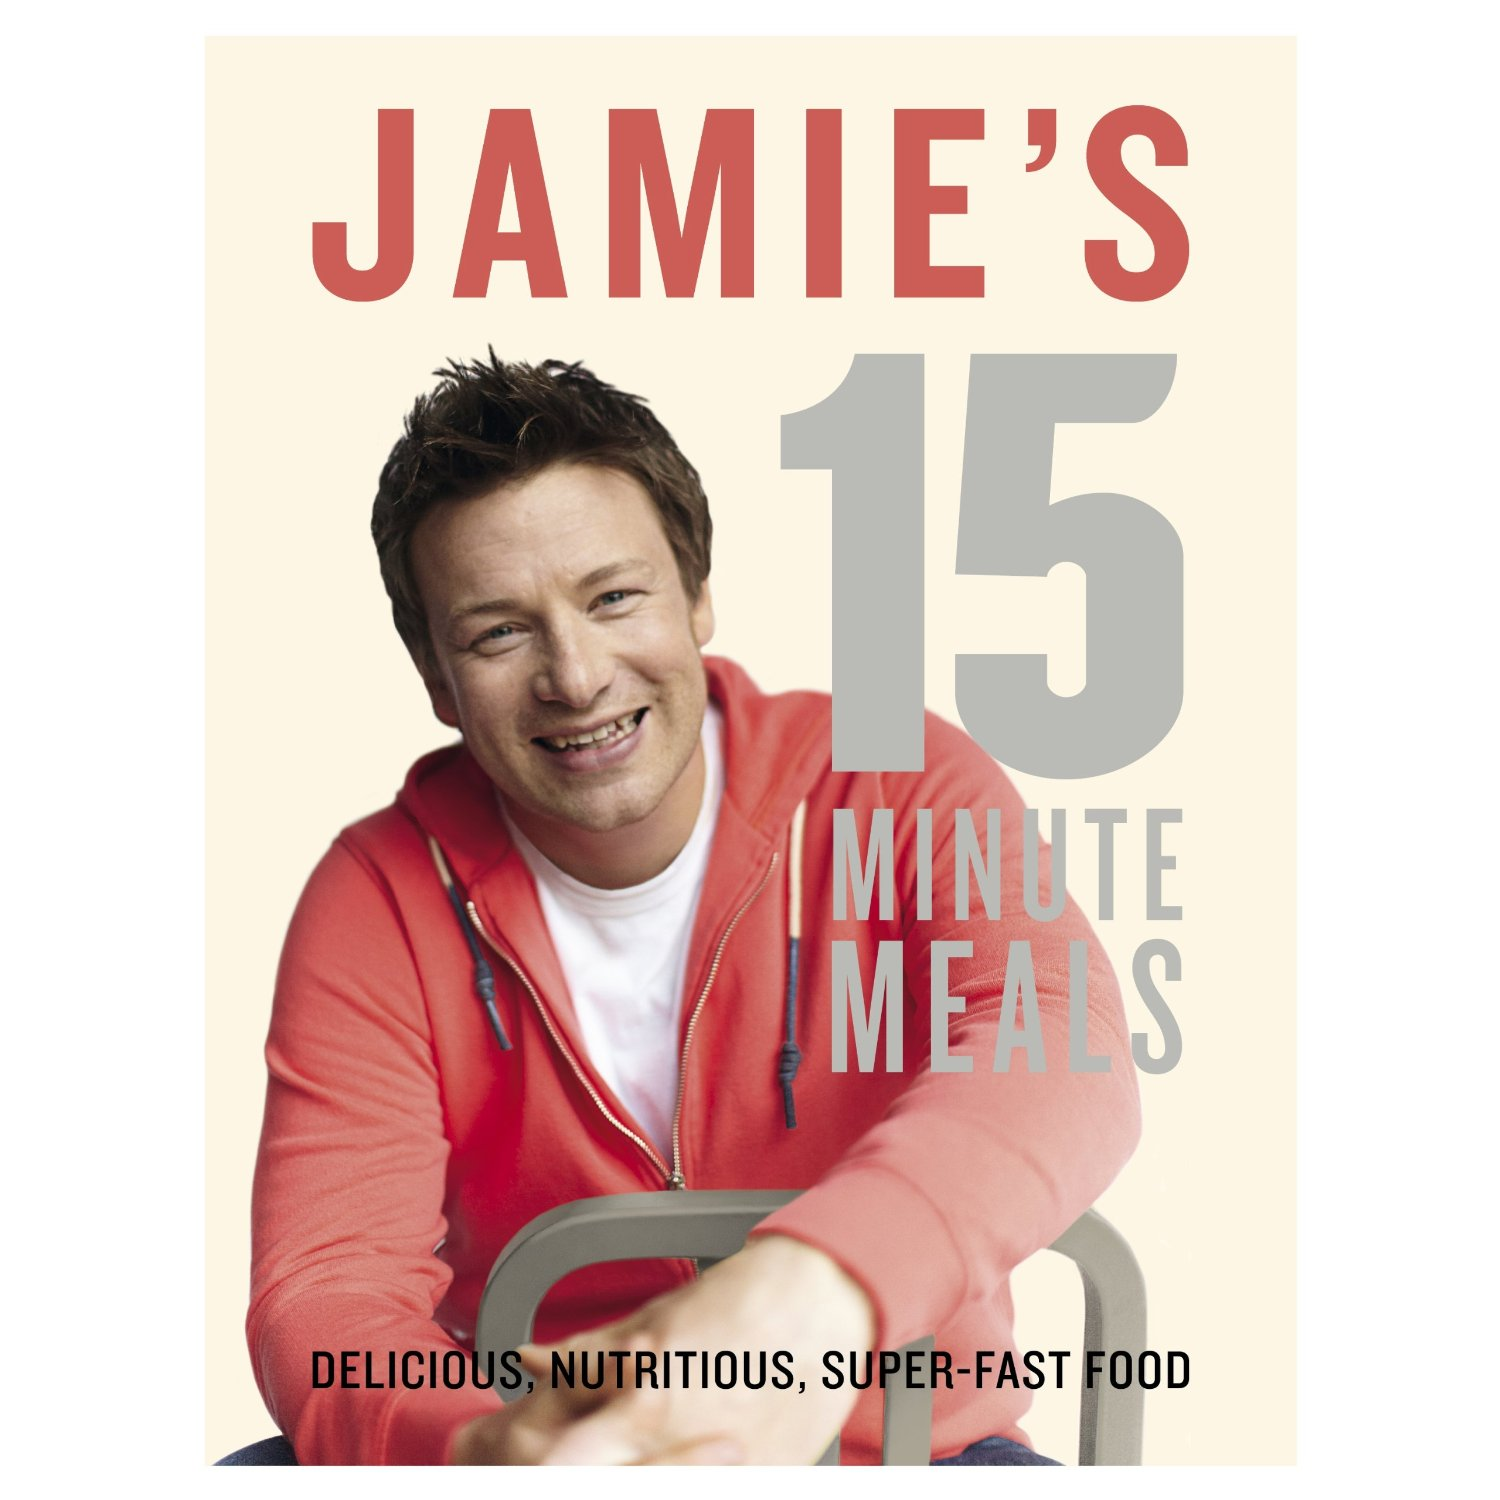 Jamie's 15 Minute Meals - book cover image